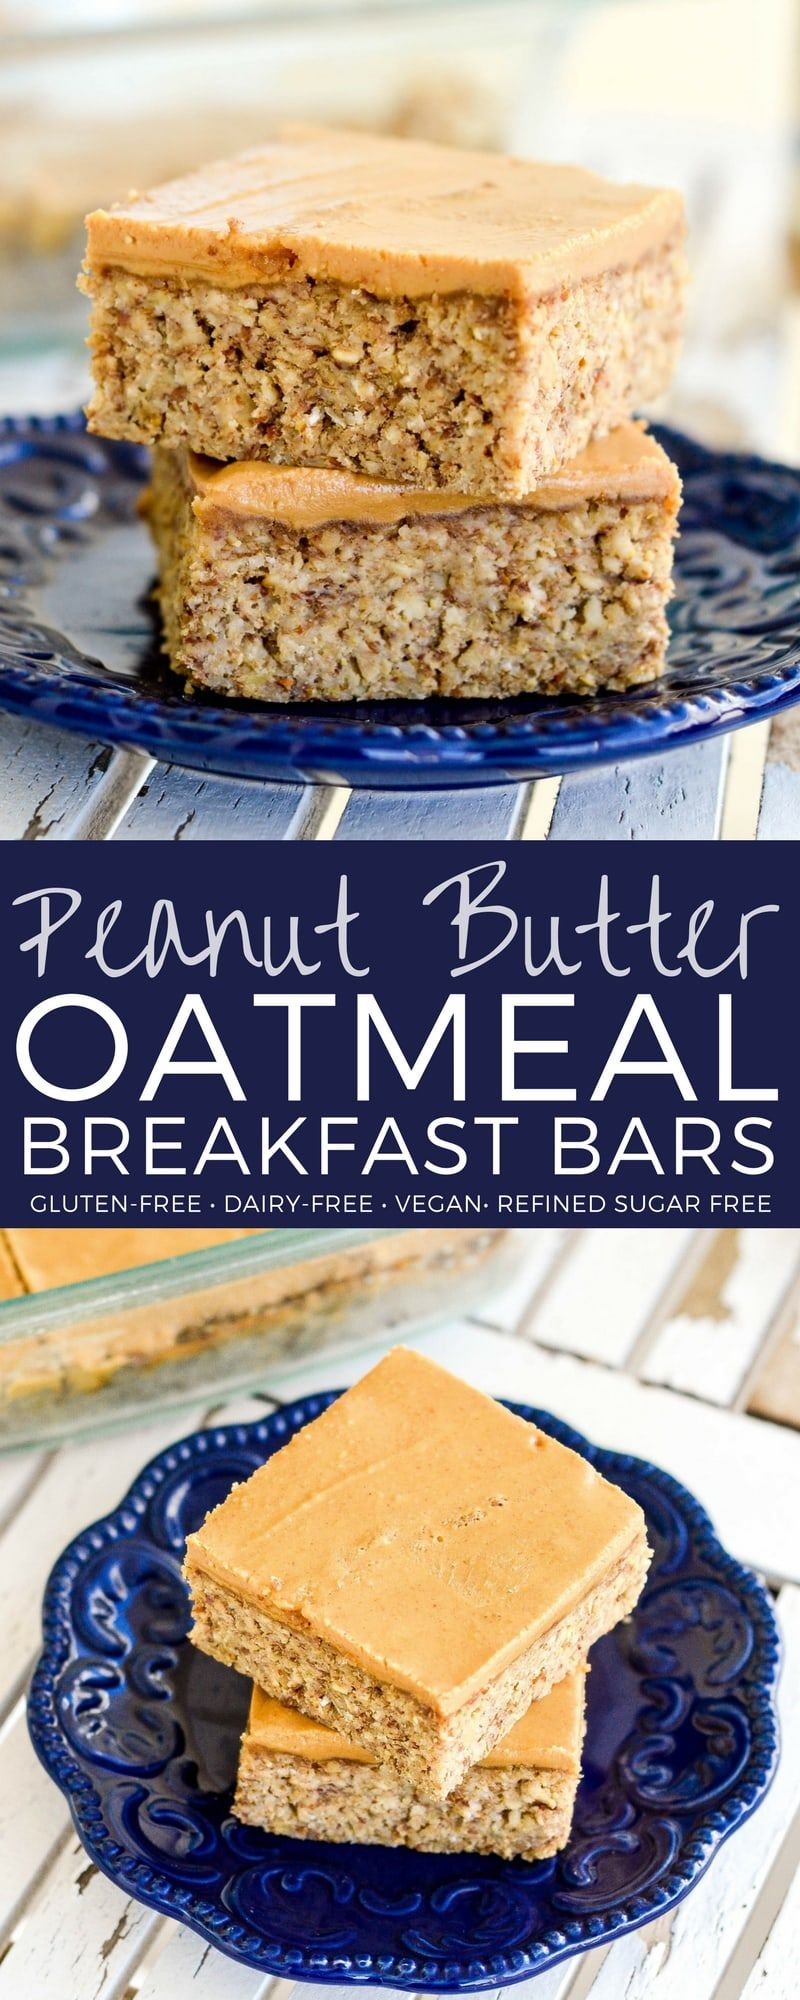 These Peanut Butter Oatmeal Breakfast Bars Are An Easy Healthy Filling Make Ah Gluten Free Breakfast Bars Peanut Butter Breakfast Bar Breakfast Bars Healthy